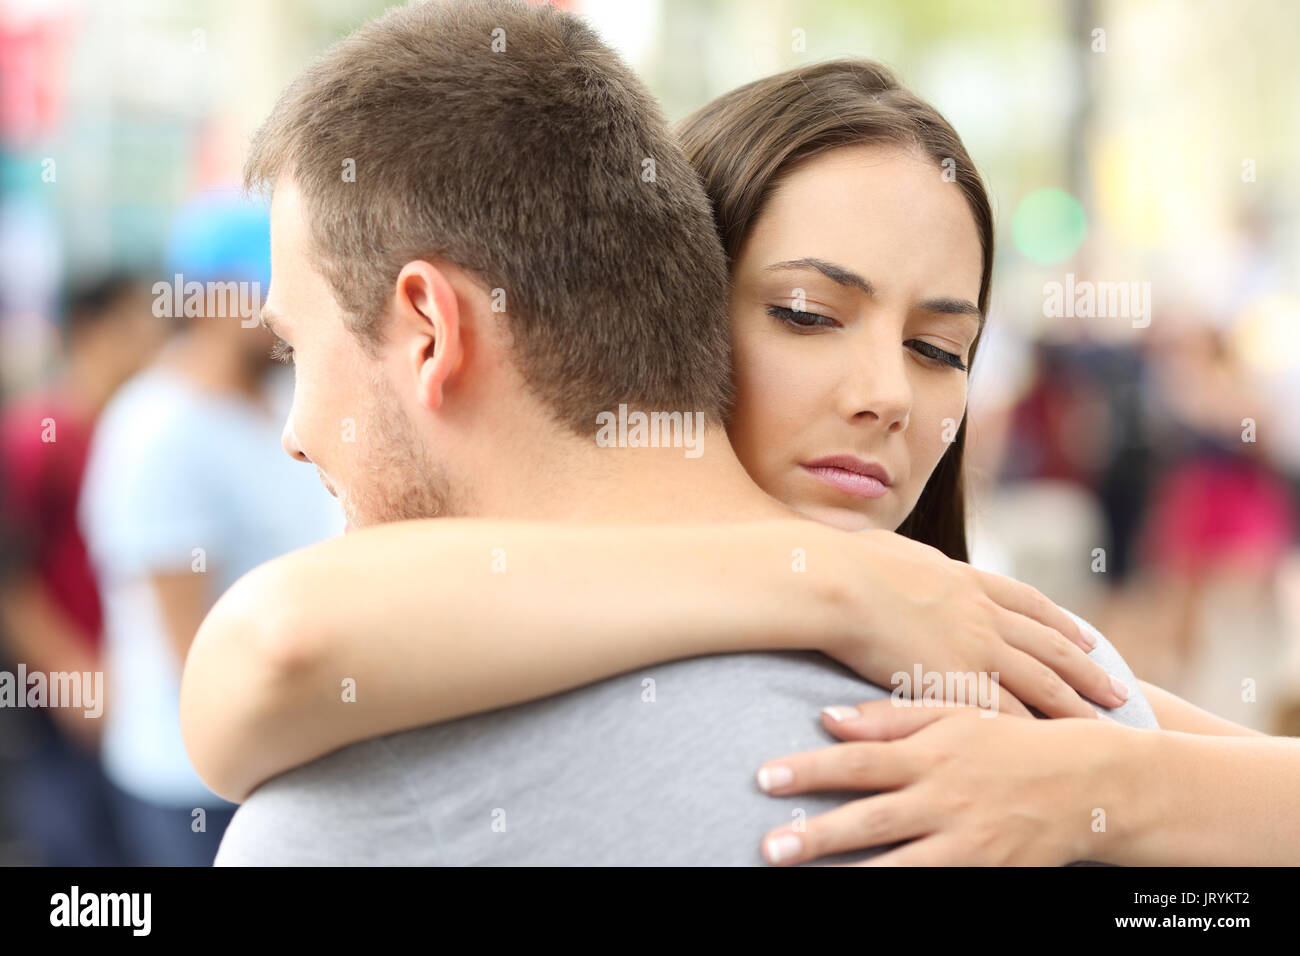 Discontent girlfriend hugging her partner on the street - Stock Image